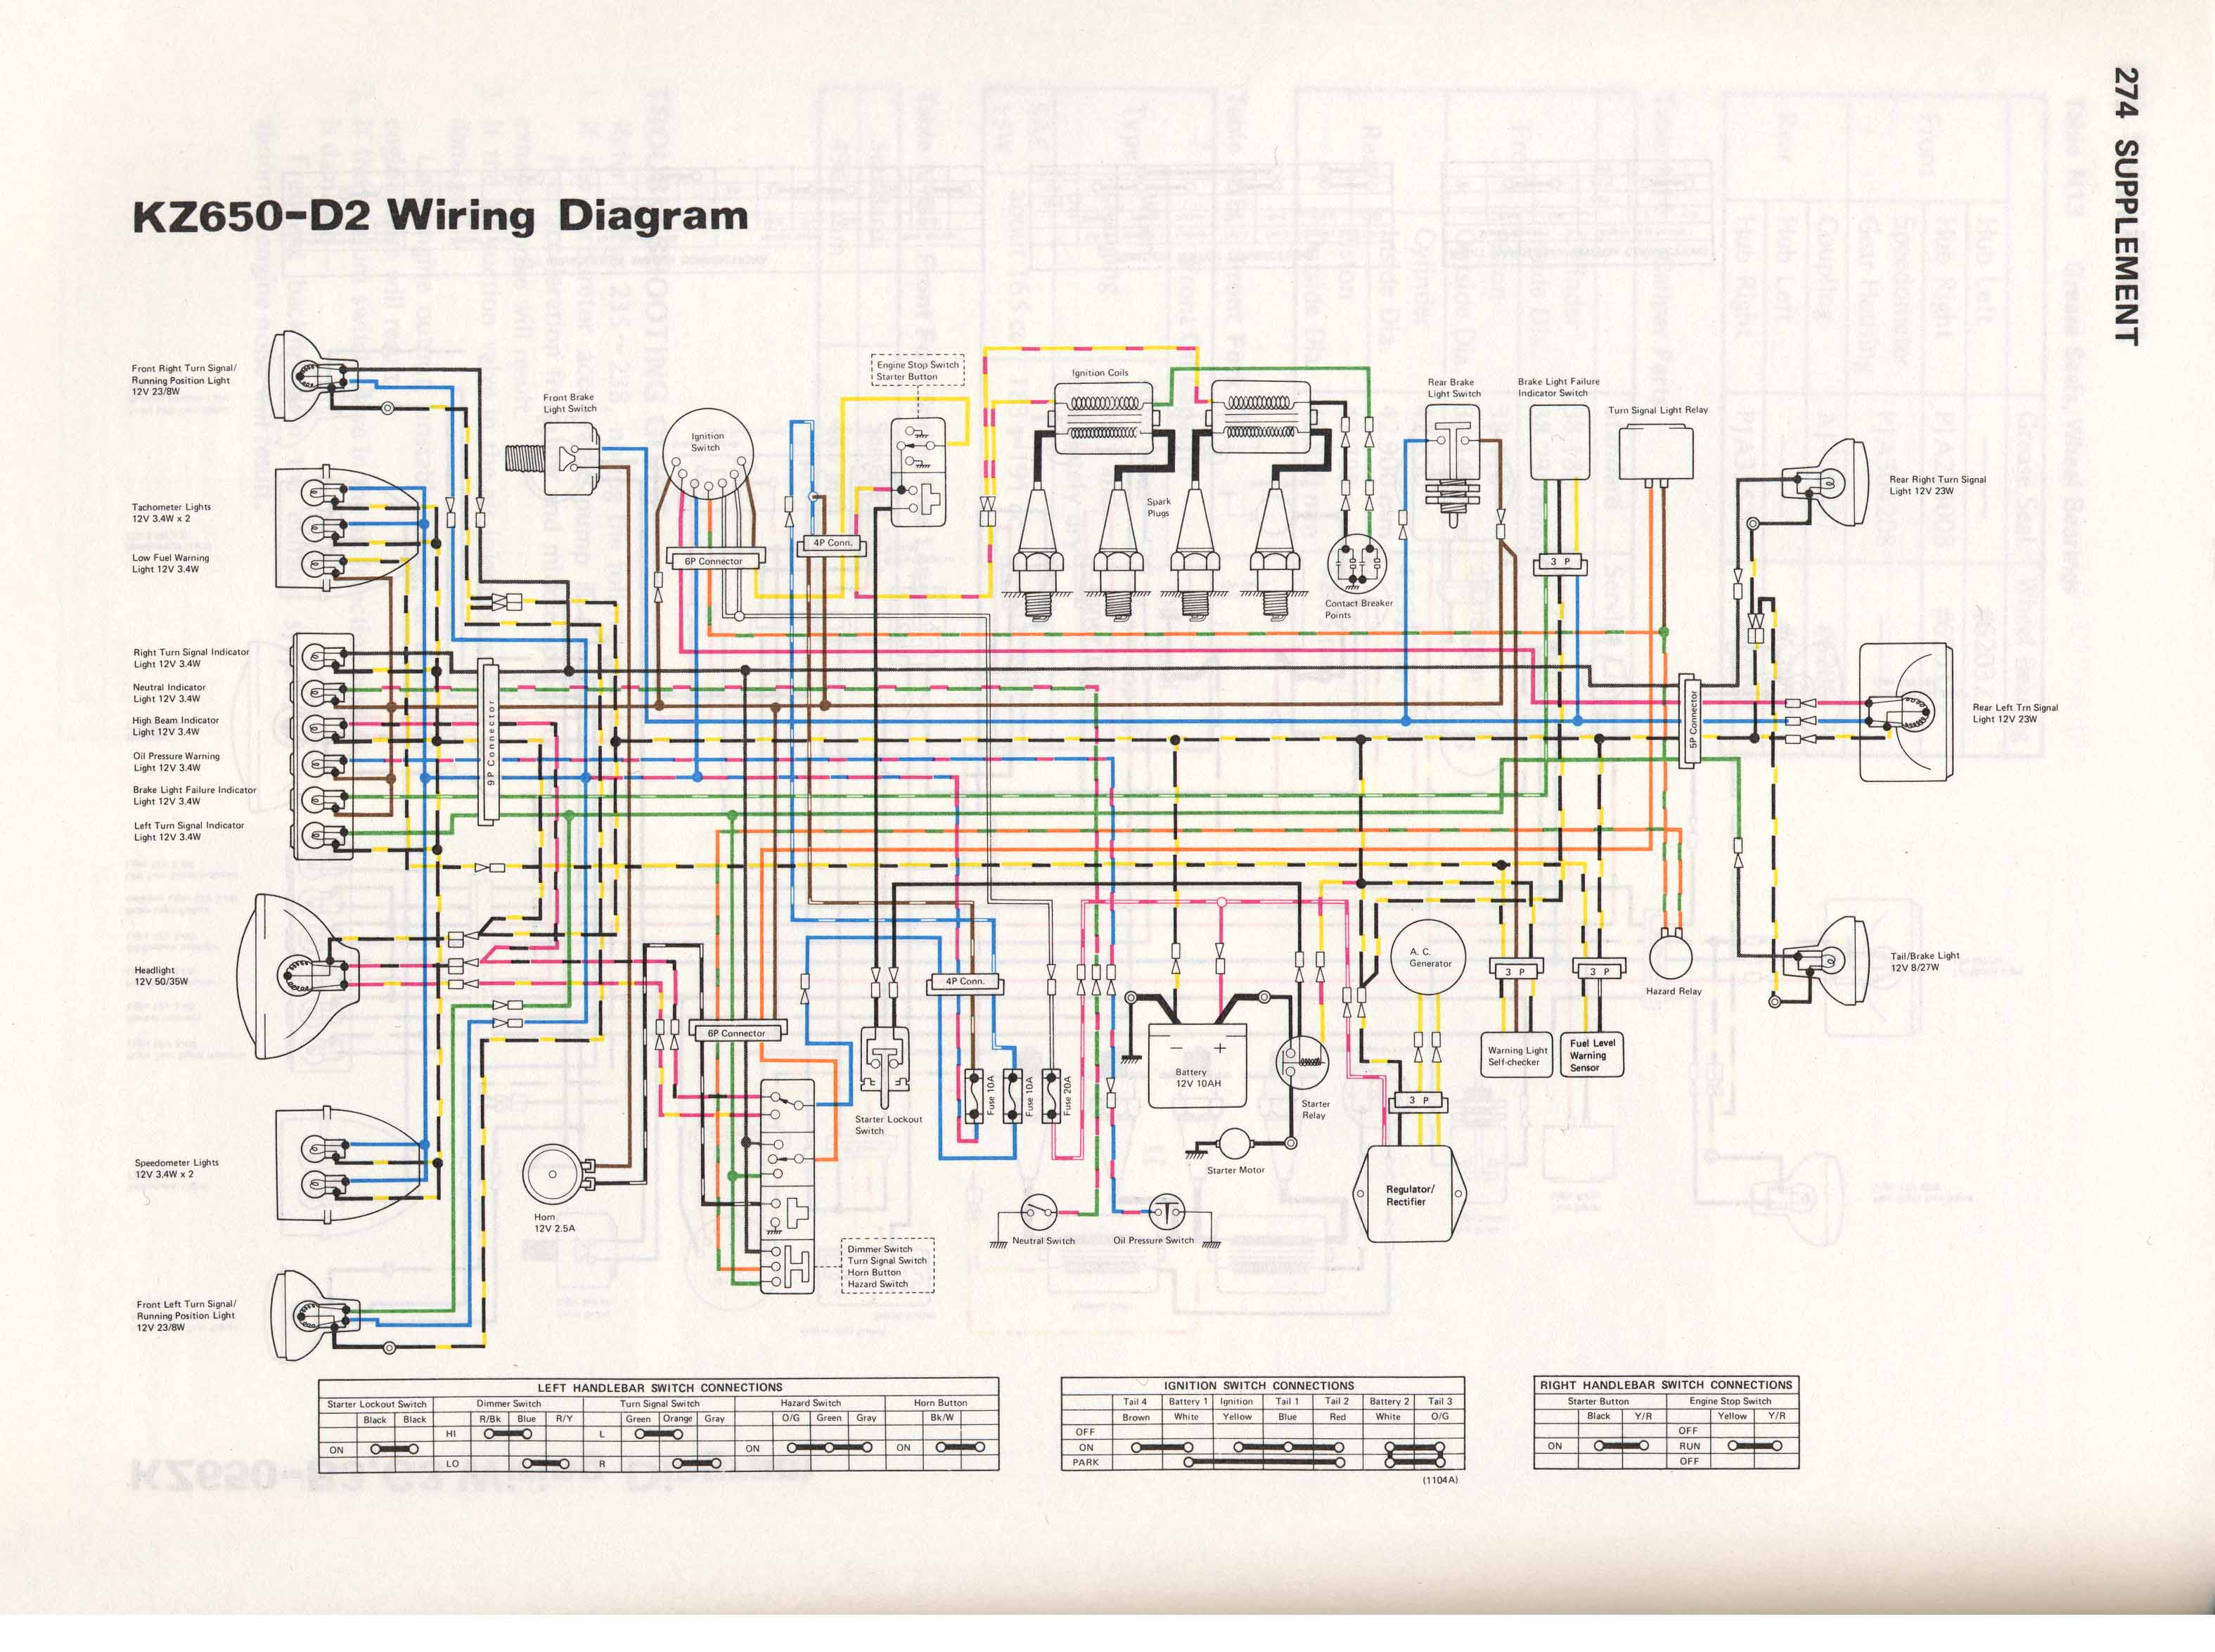 KZ650 D2 kz650 info wiring diagrams Electrical Wire Color Codes at bakdesigns.co